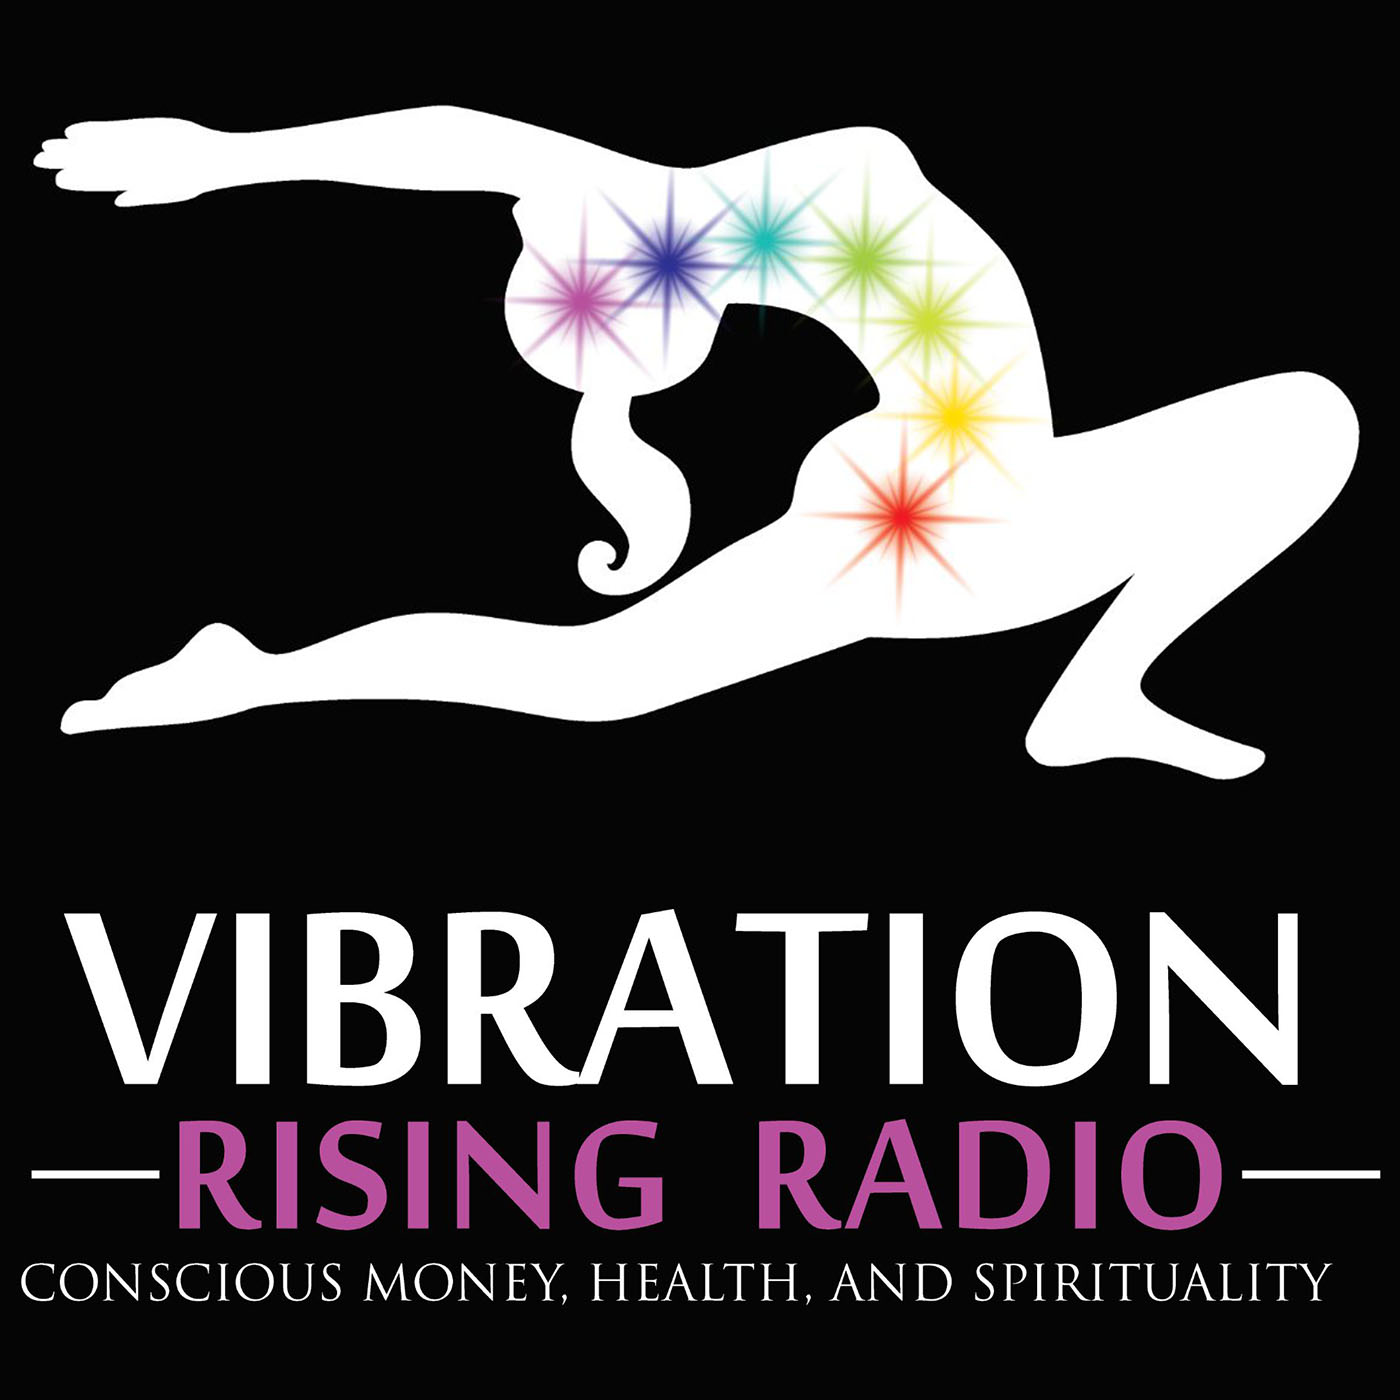 Vibration Rising Radio